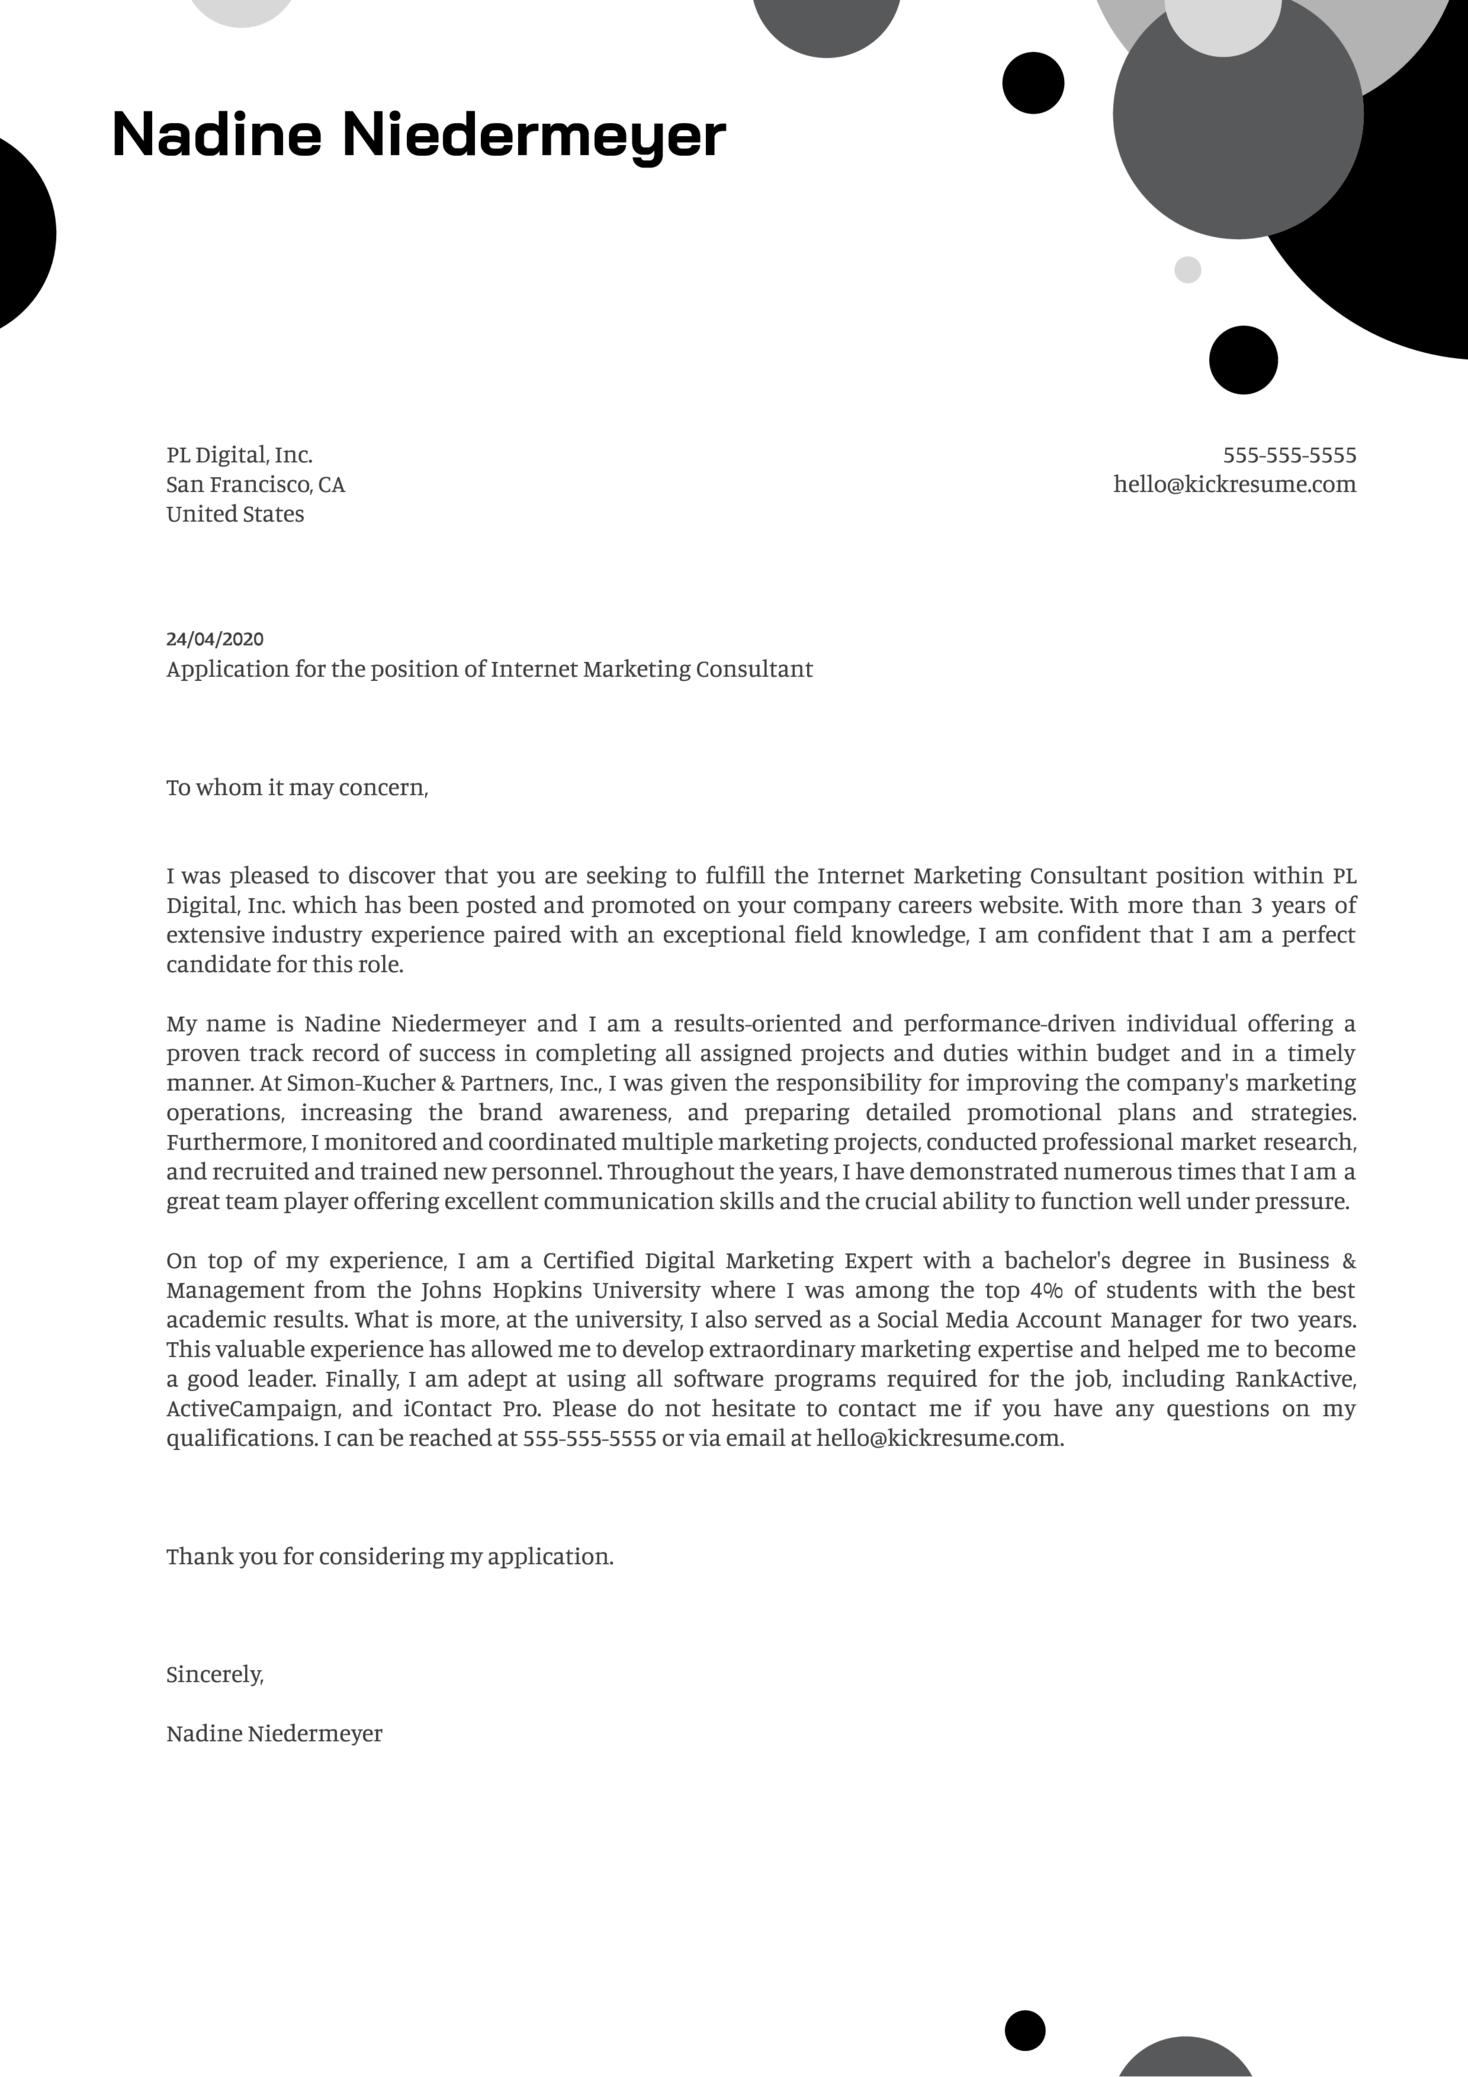 Internet Marketing Consultant Cover Letter Example